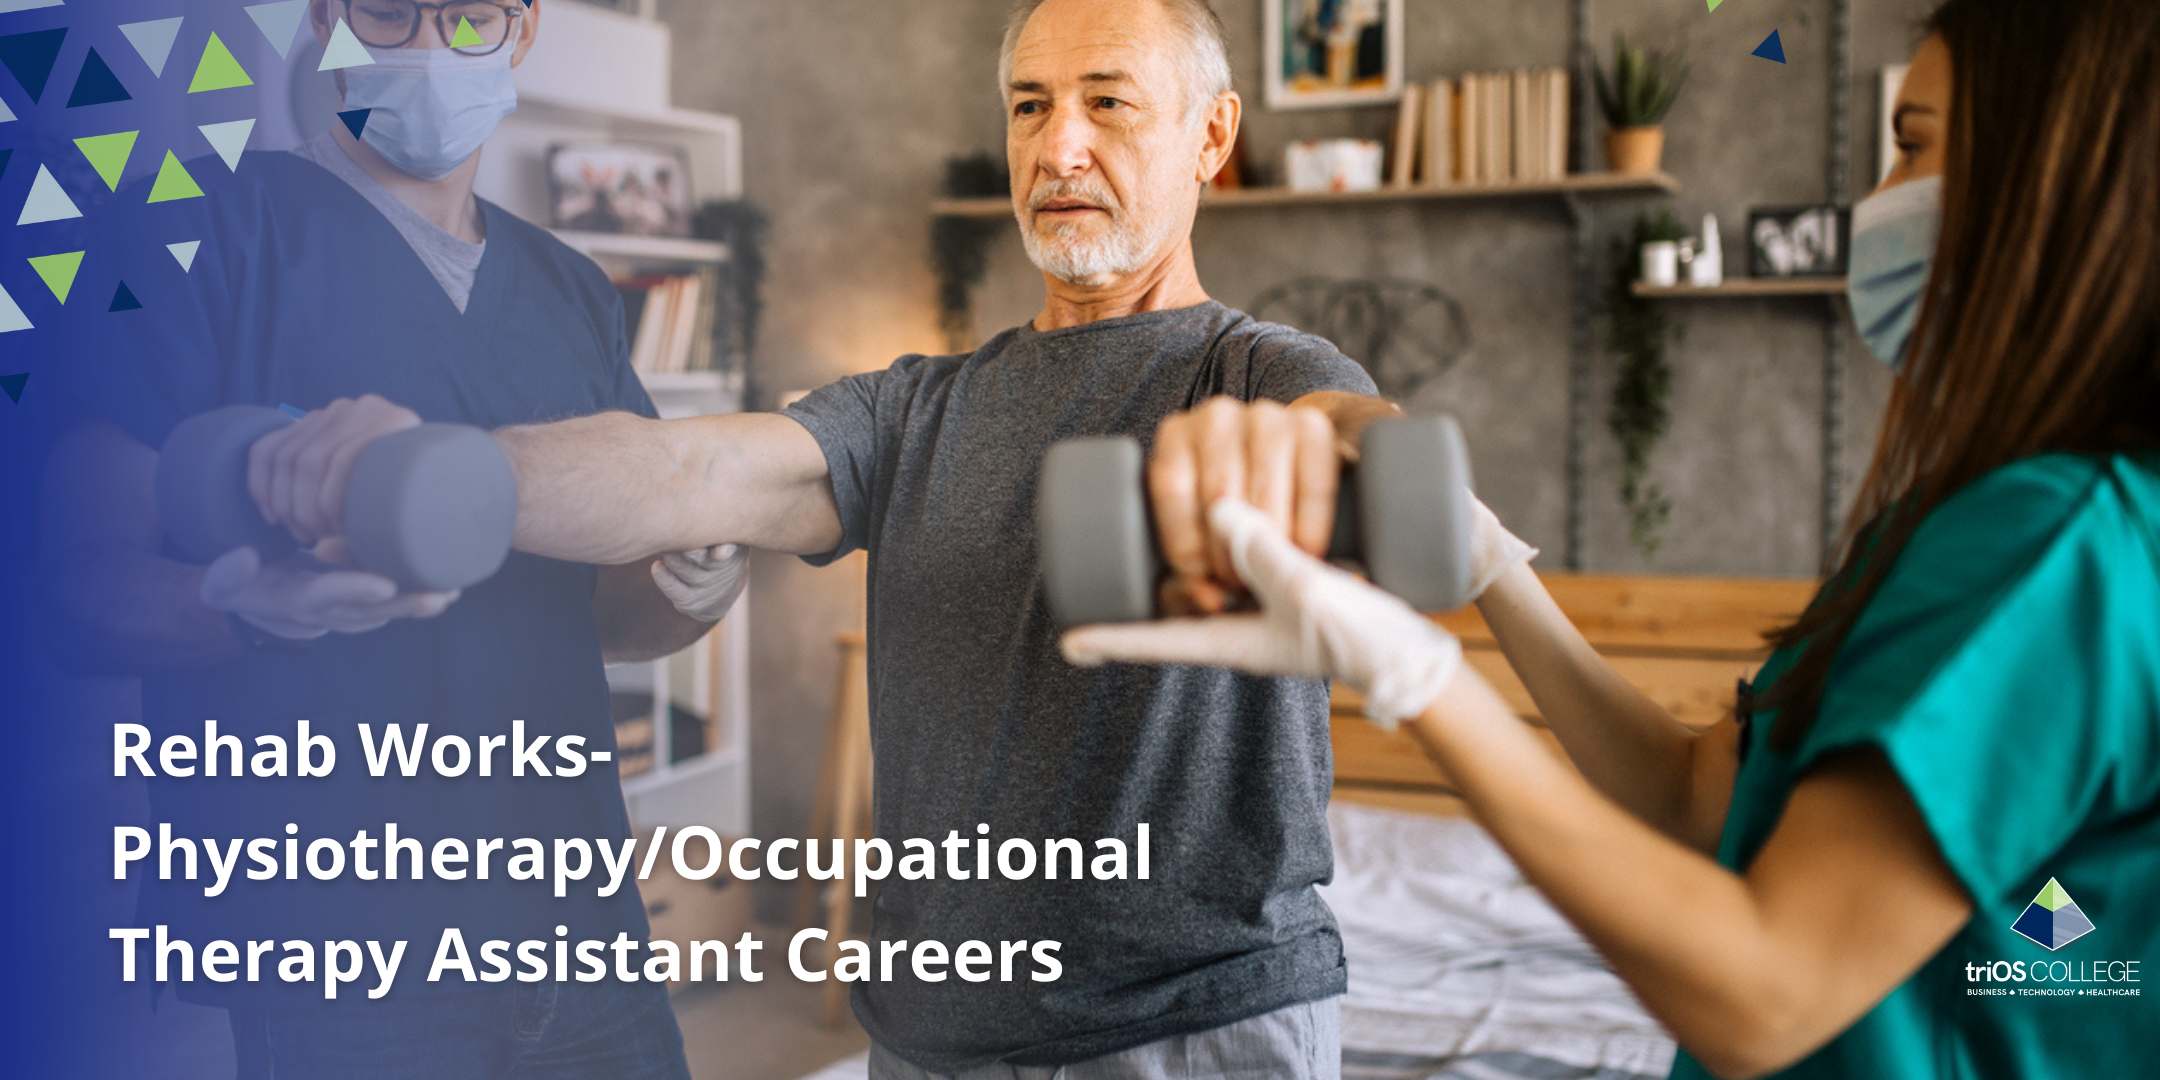 Rehab Works- Physiotherapy/Occupational Therapy Assistant Careers featured image